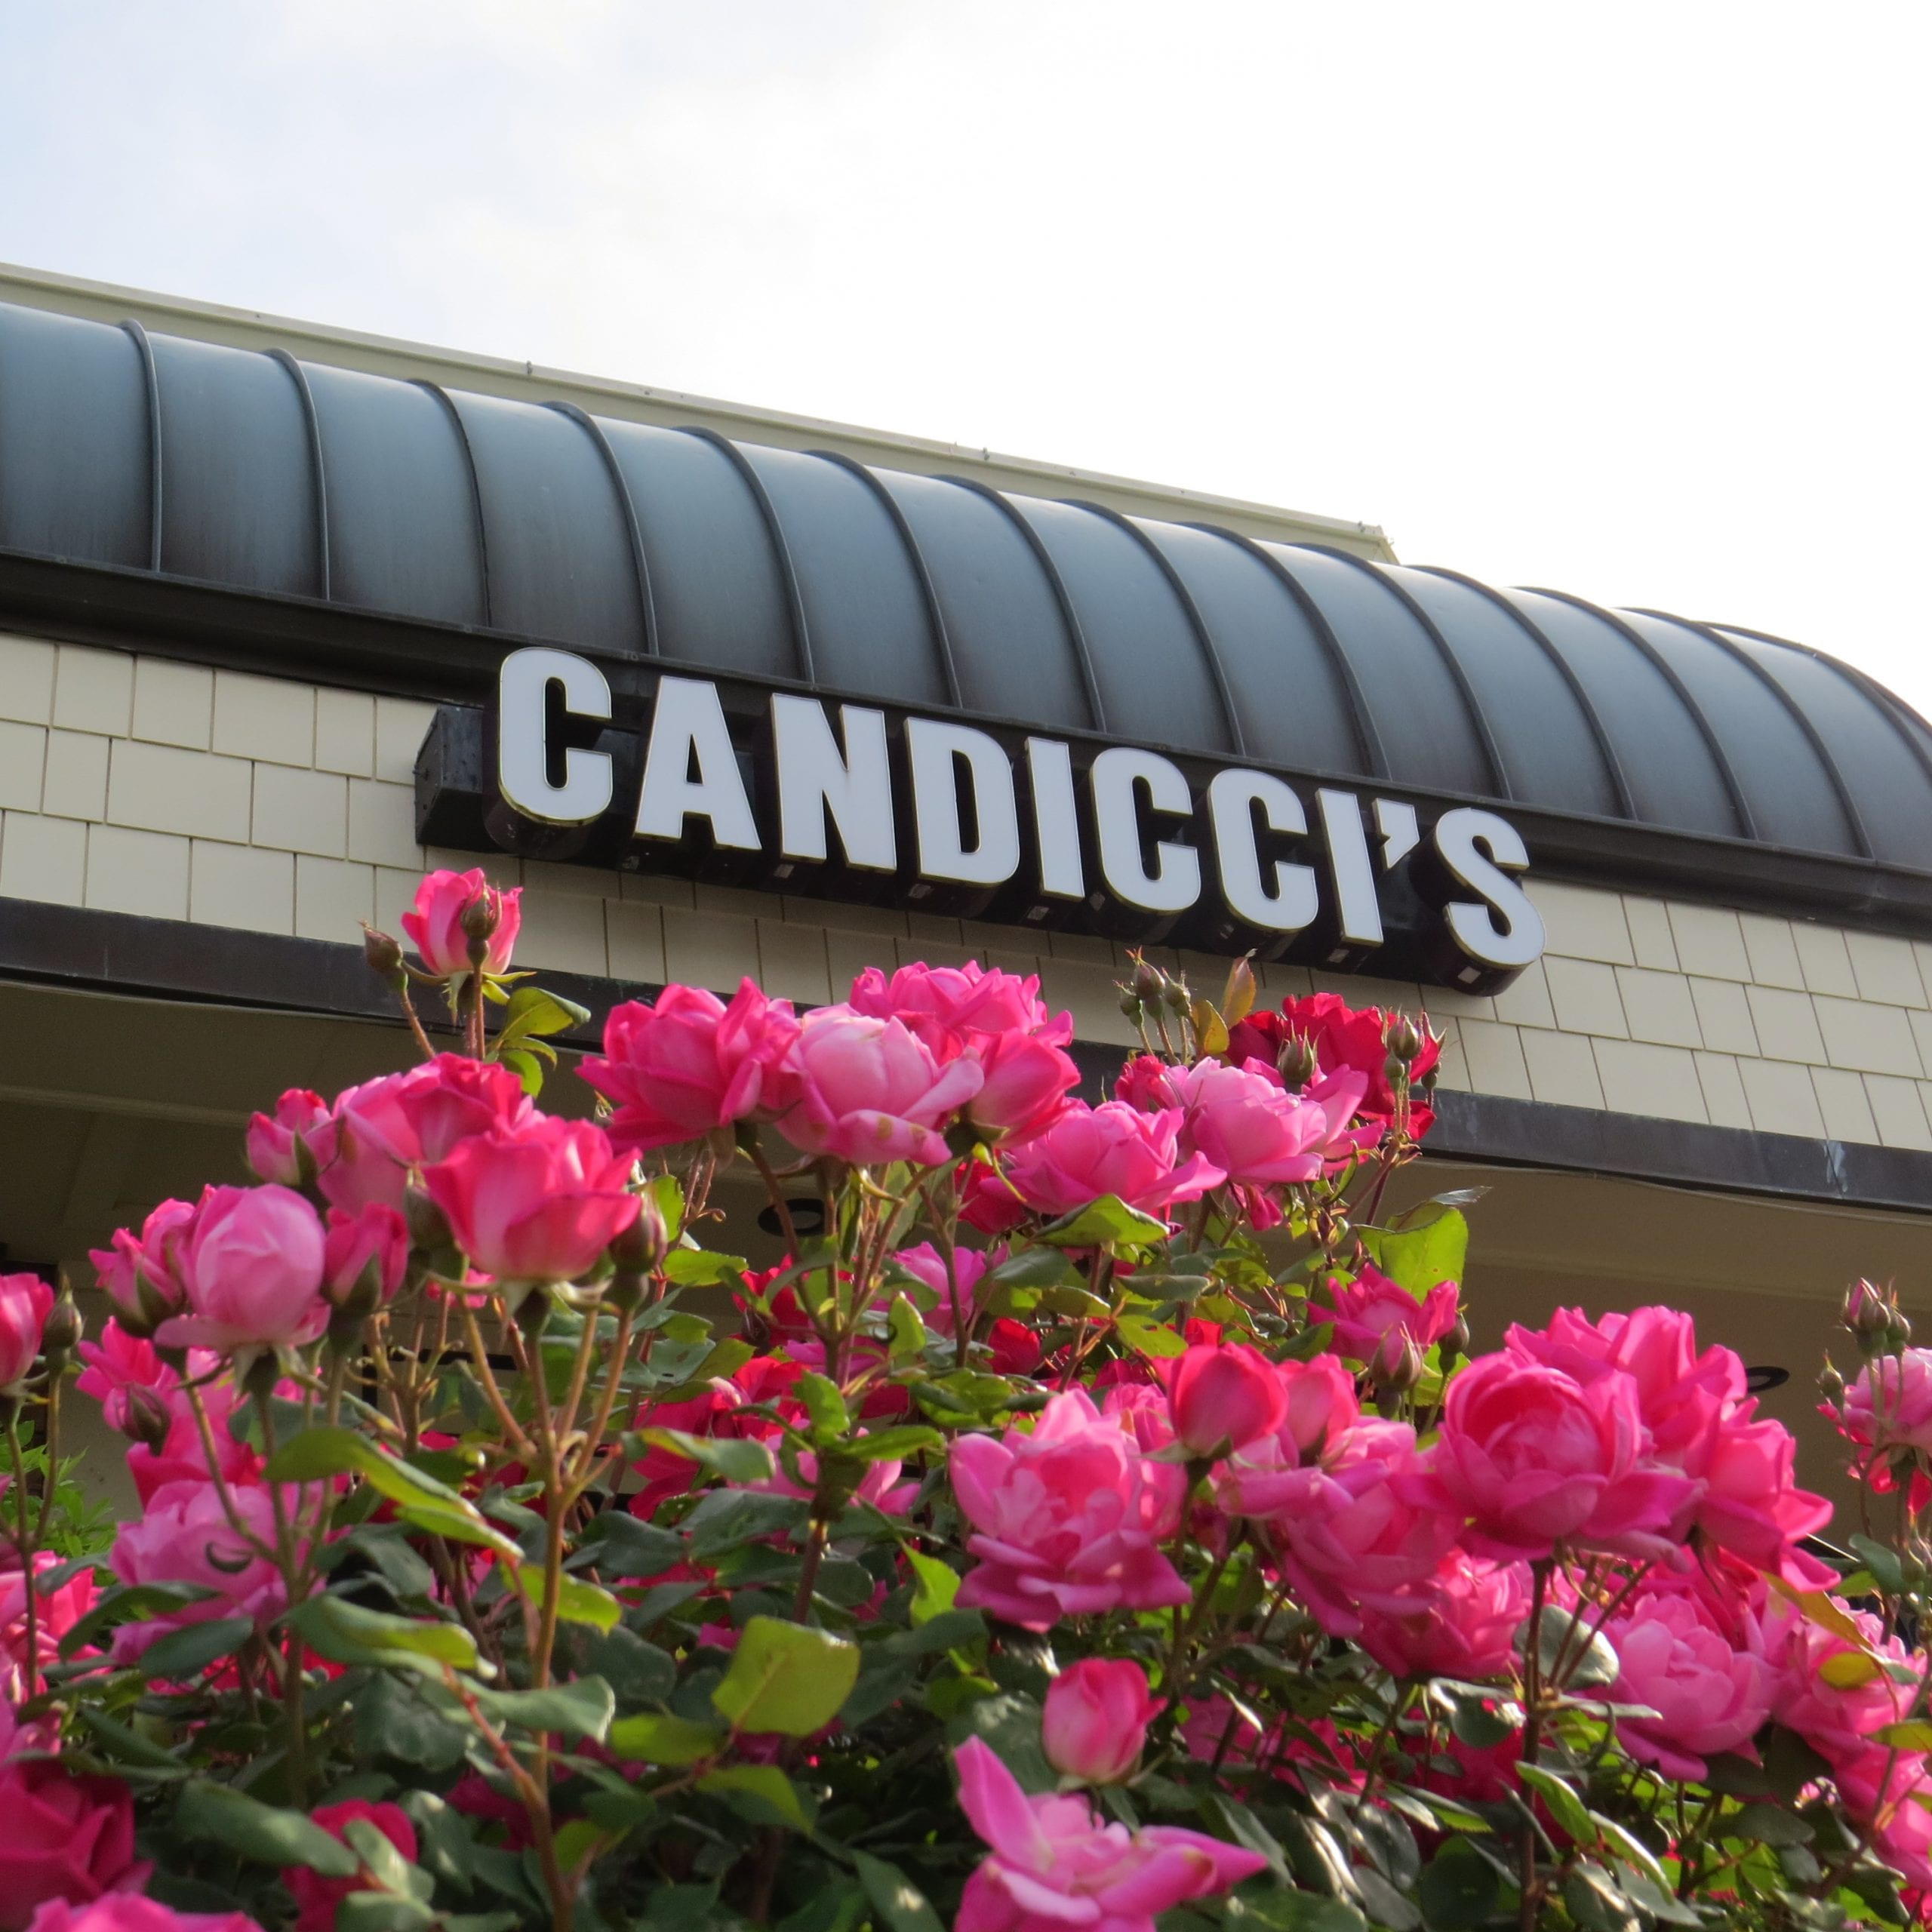 Weekend Specials at Candicci's